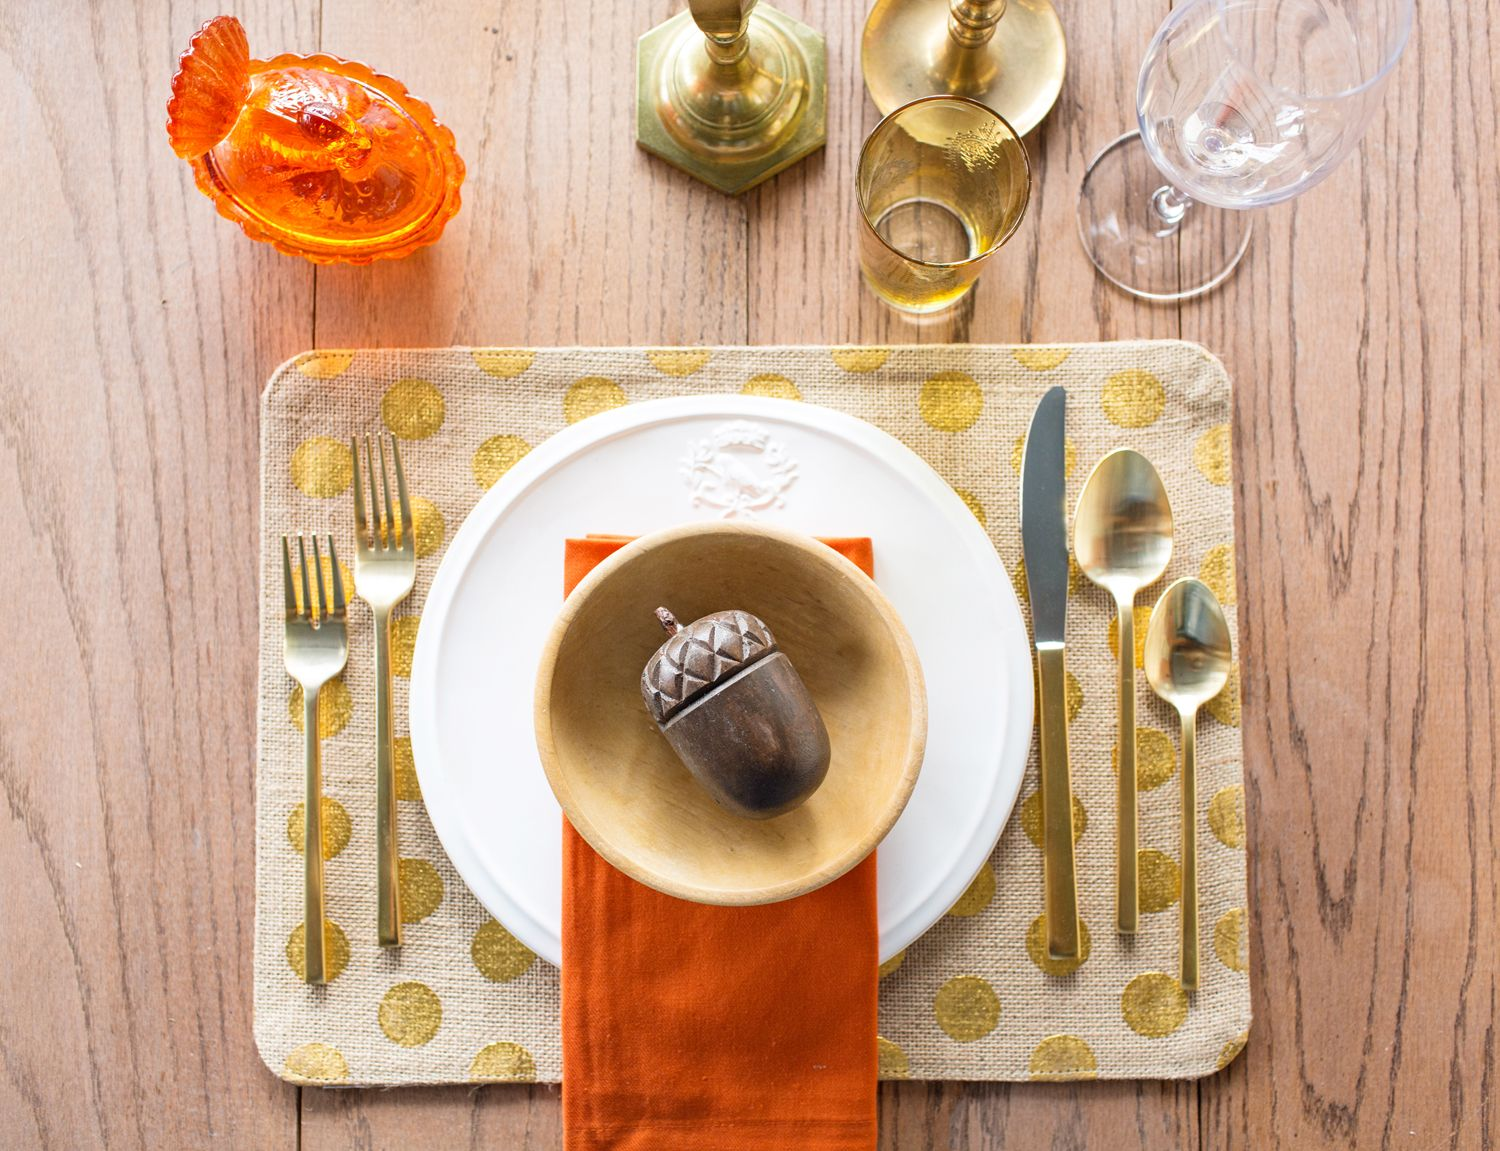 4 Rustic chic table setting ideas for Thanksgiving - Thanksgiving.com & 4 rustic chic table setting ideas for | Rustic chic Table settings ...